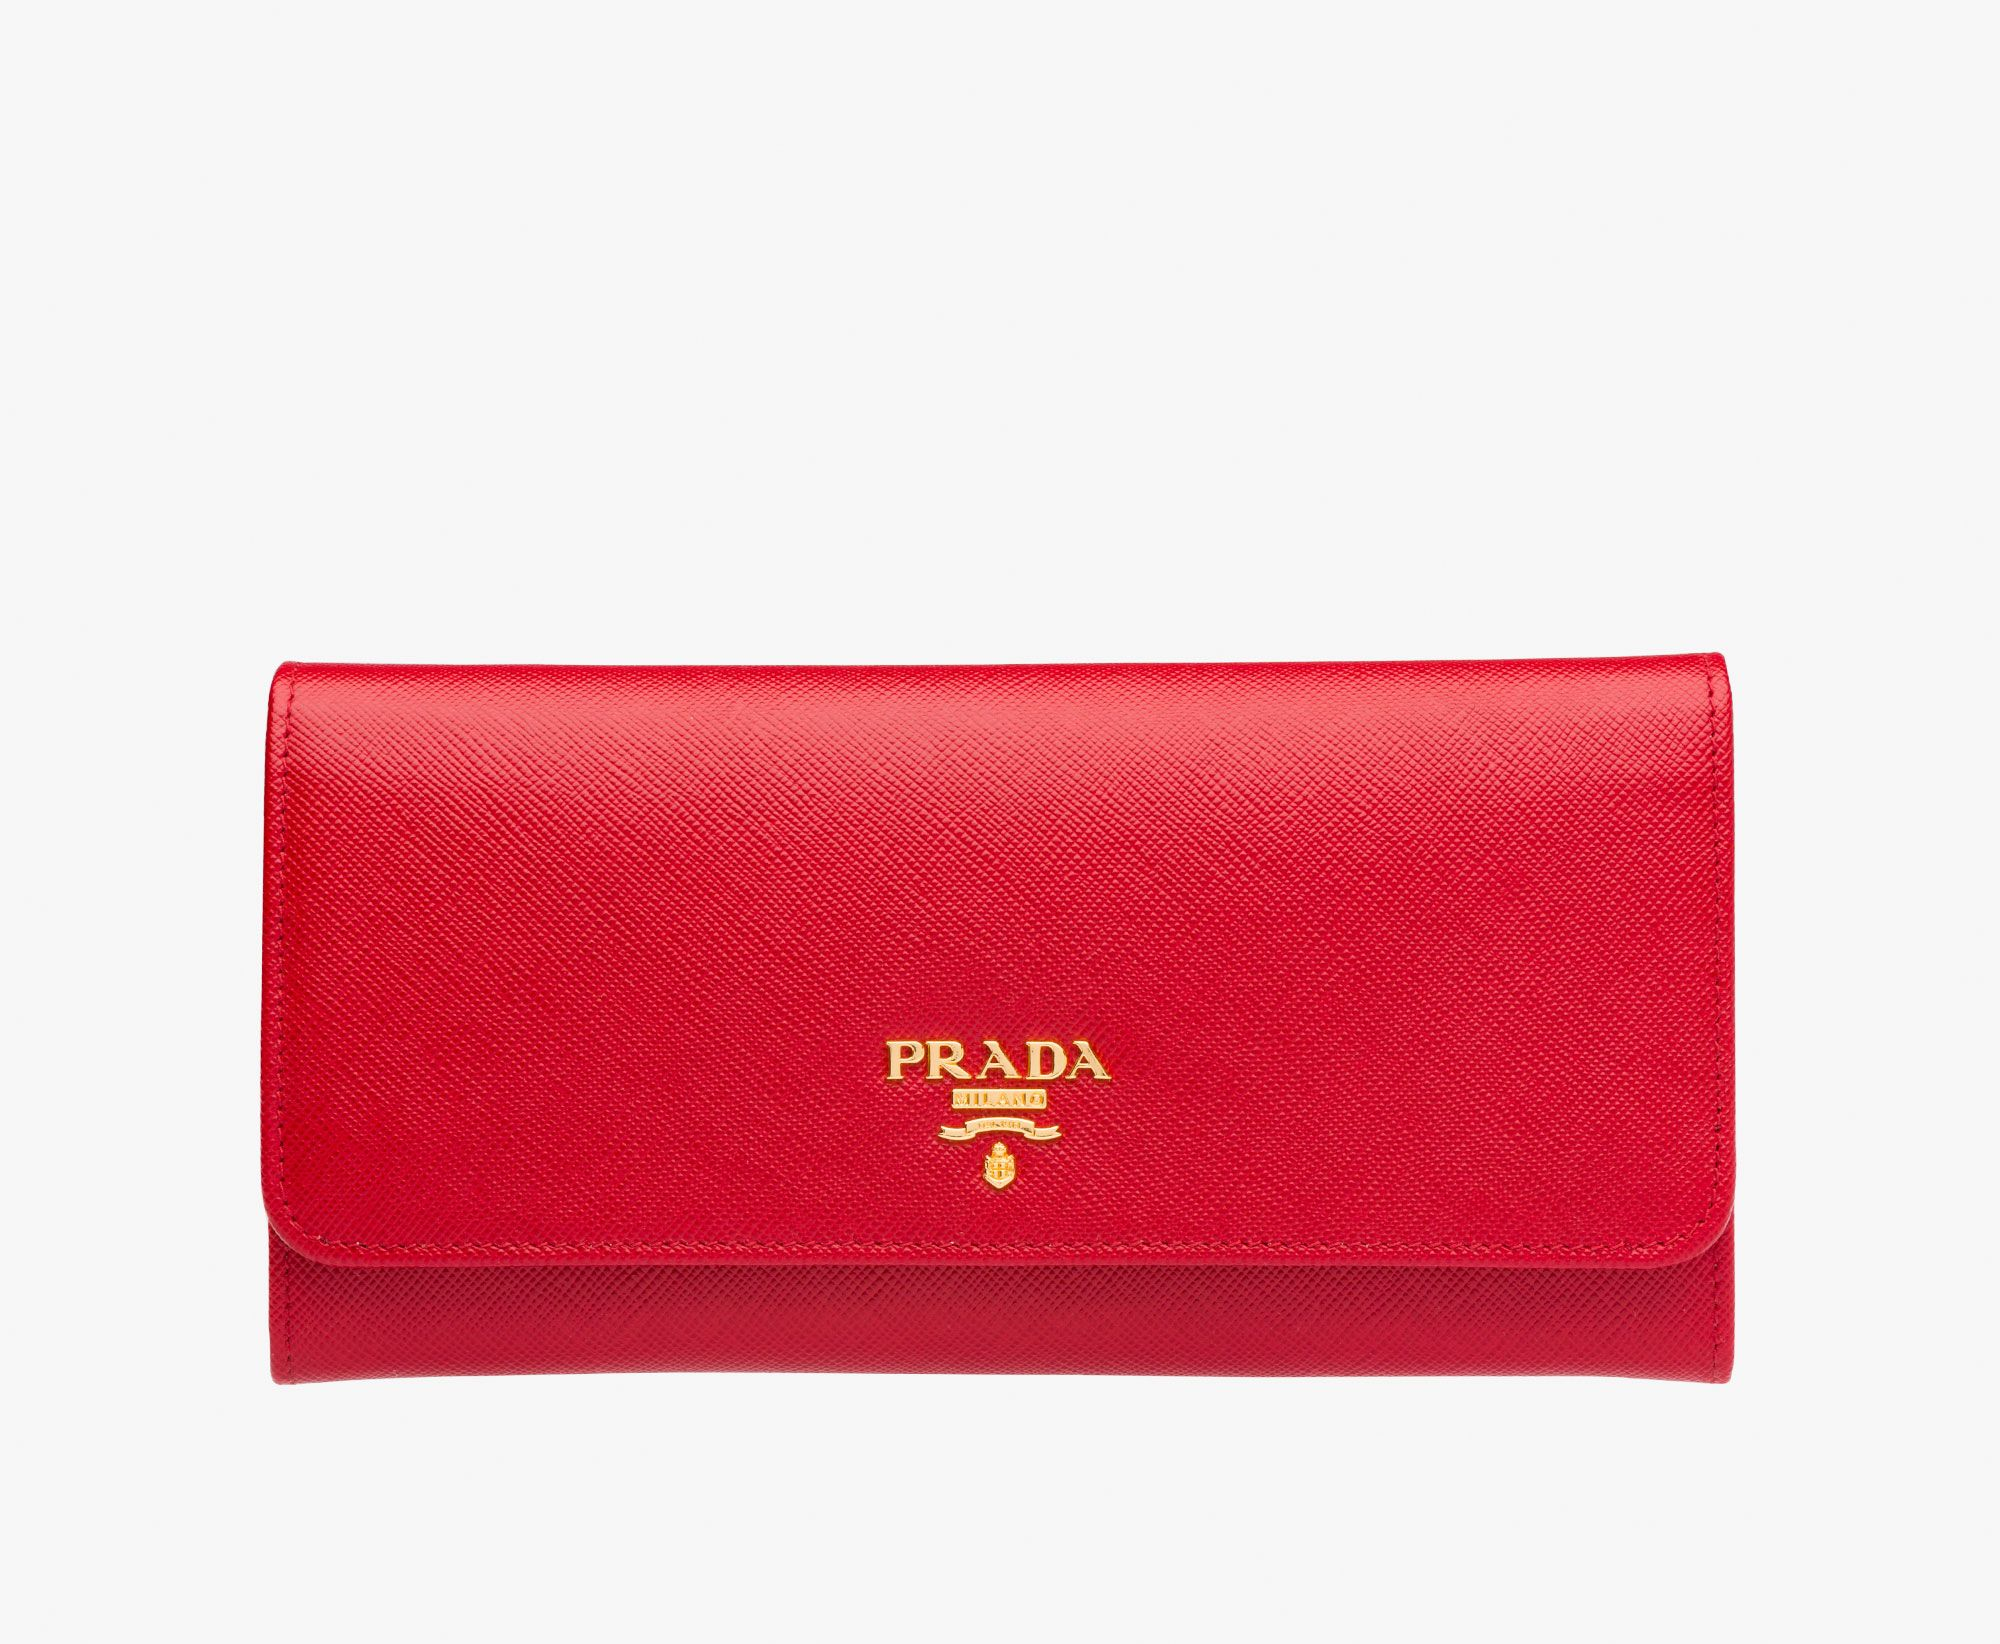 f8a2f2ac814171 Saffiano leather flap wallet Gold-plated hardware Metal lettering logo Snap  closure Ten credit card